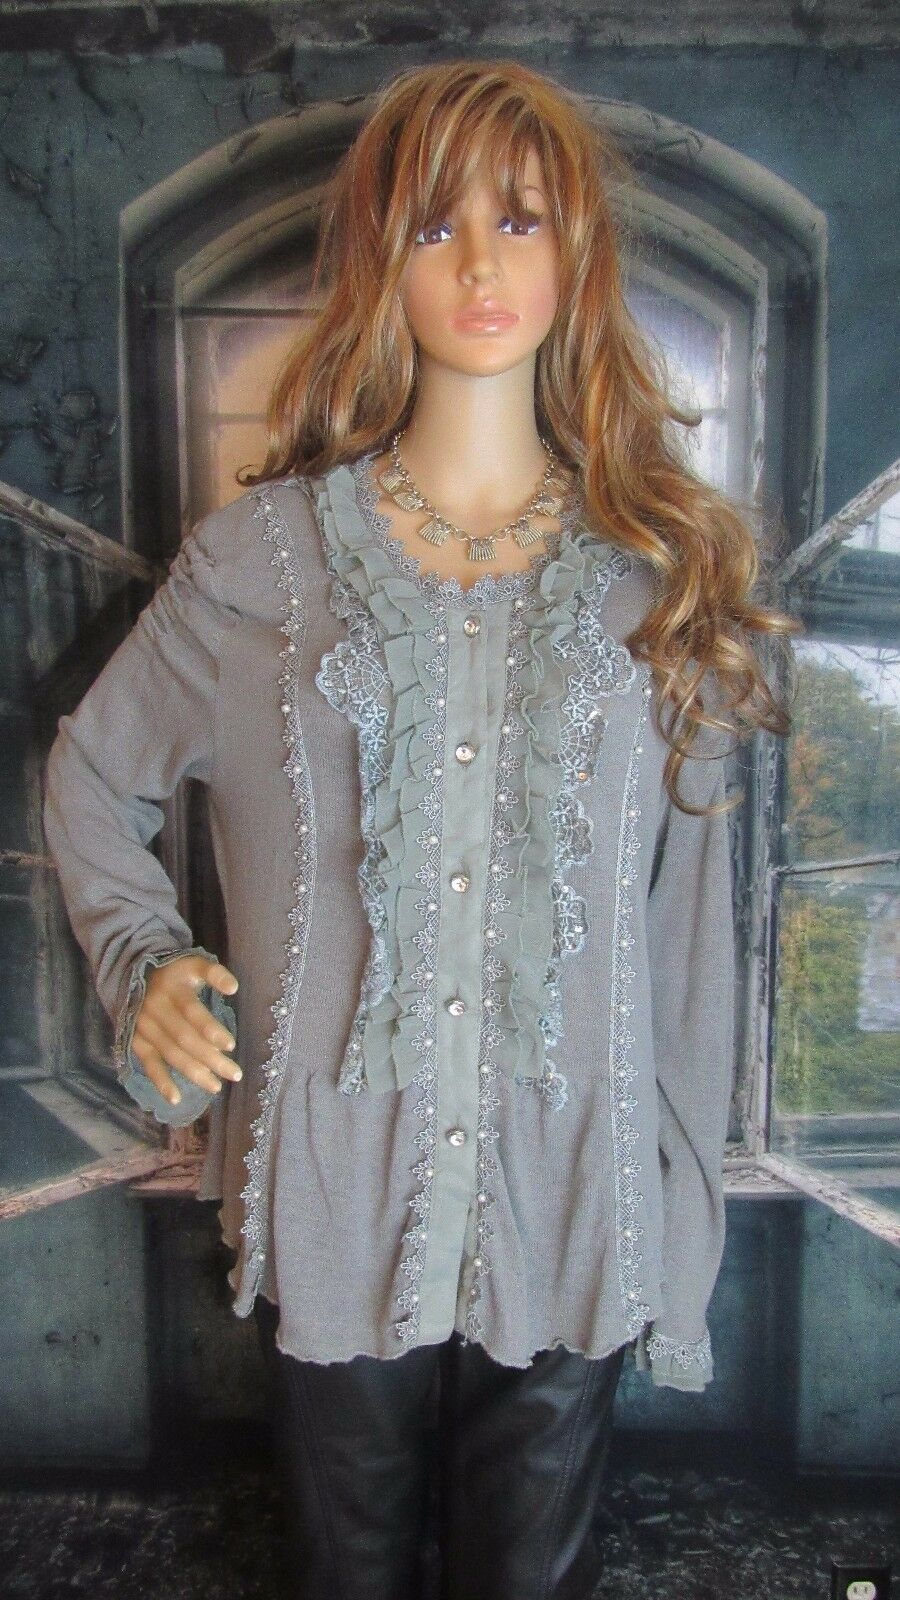 Pretty Angel Romantic Lace Ruffles Sequin & Pearl Embellished Sweater. Size XL.